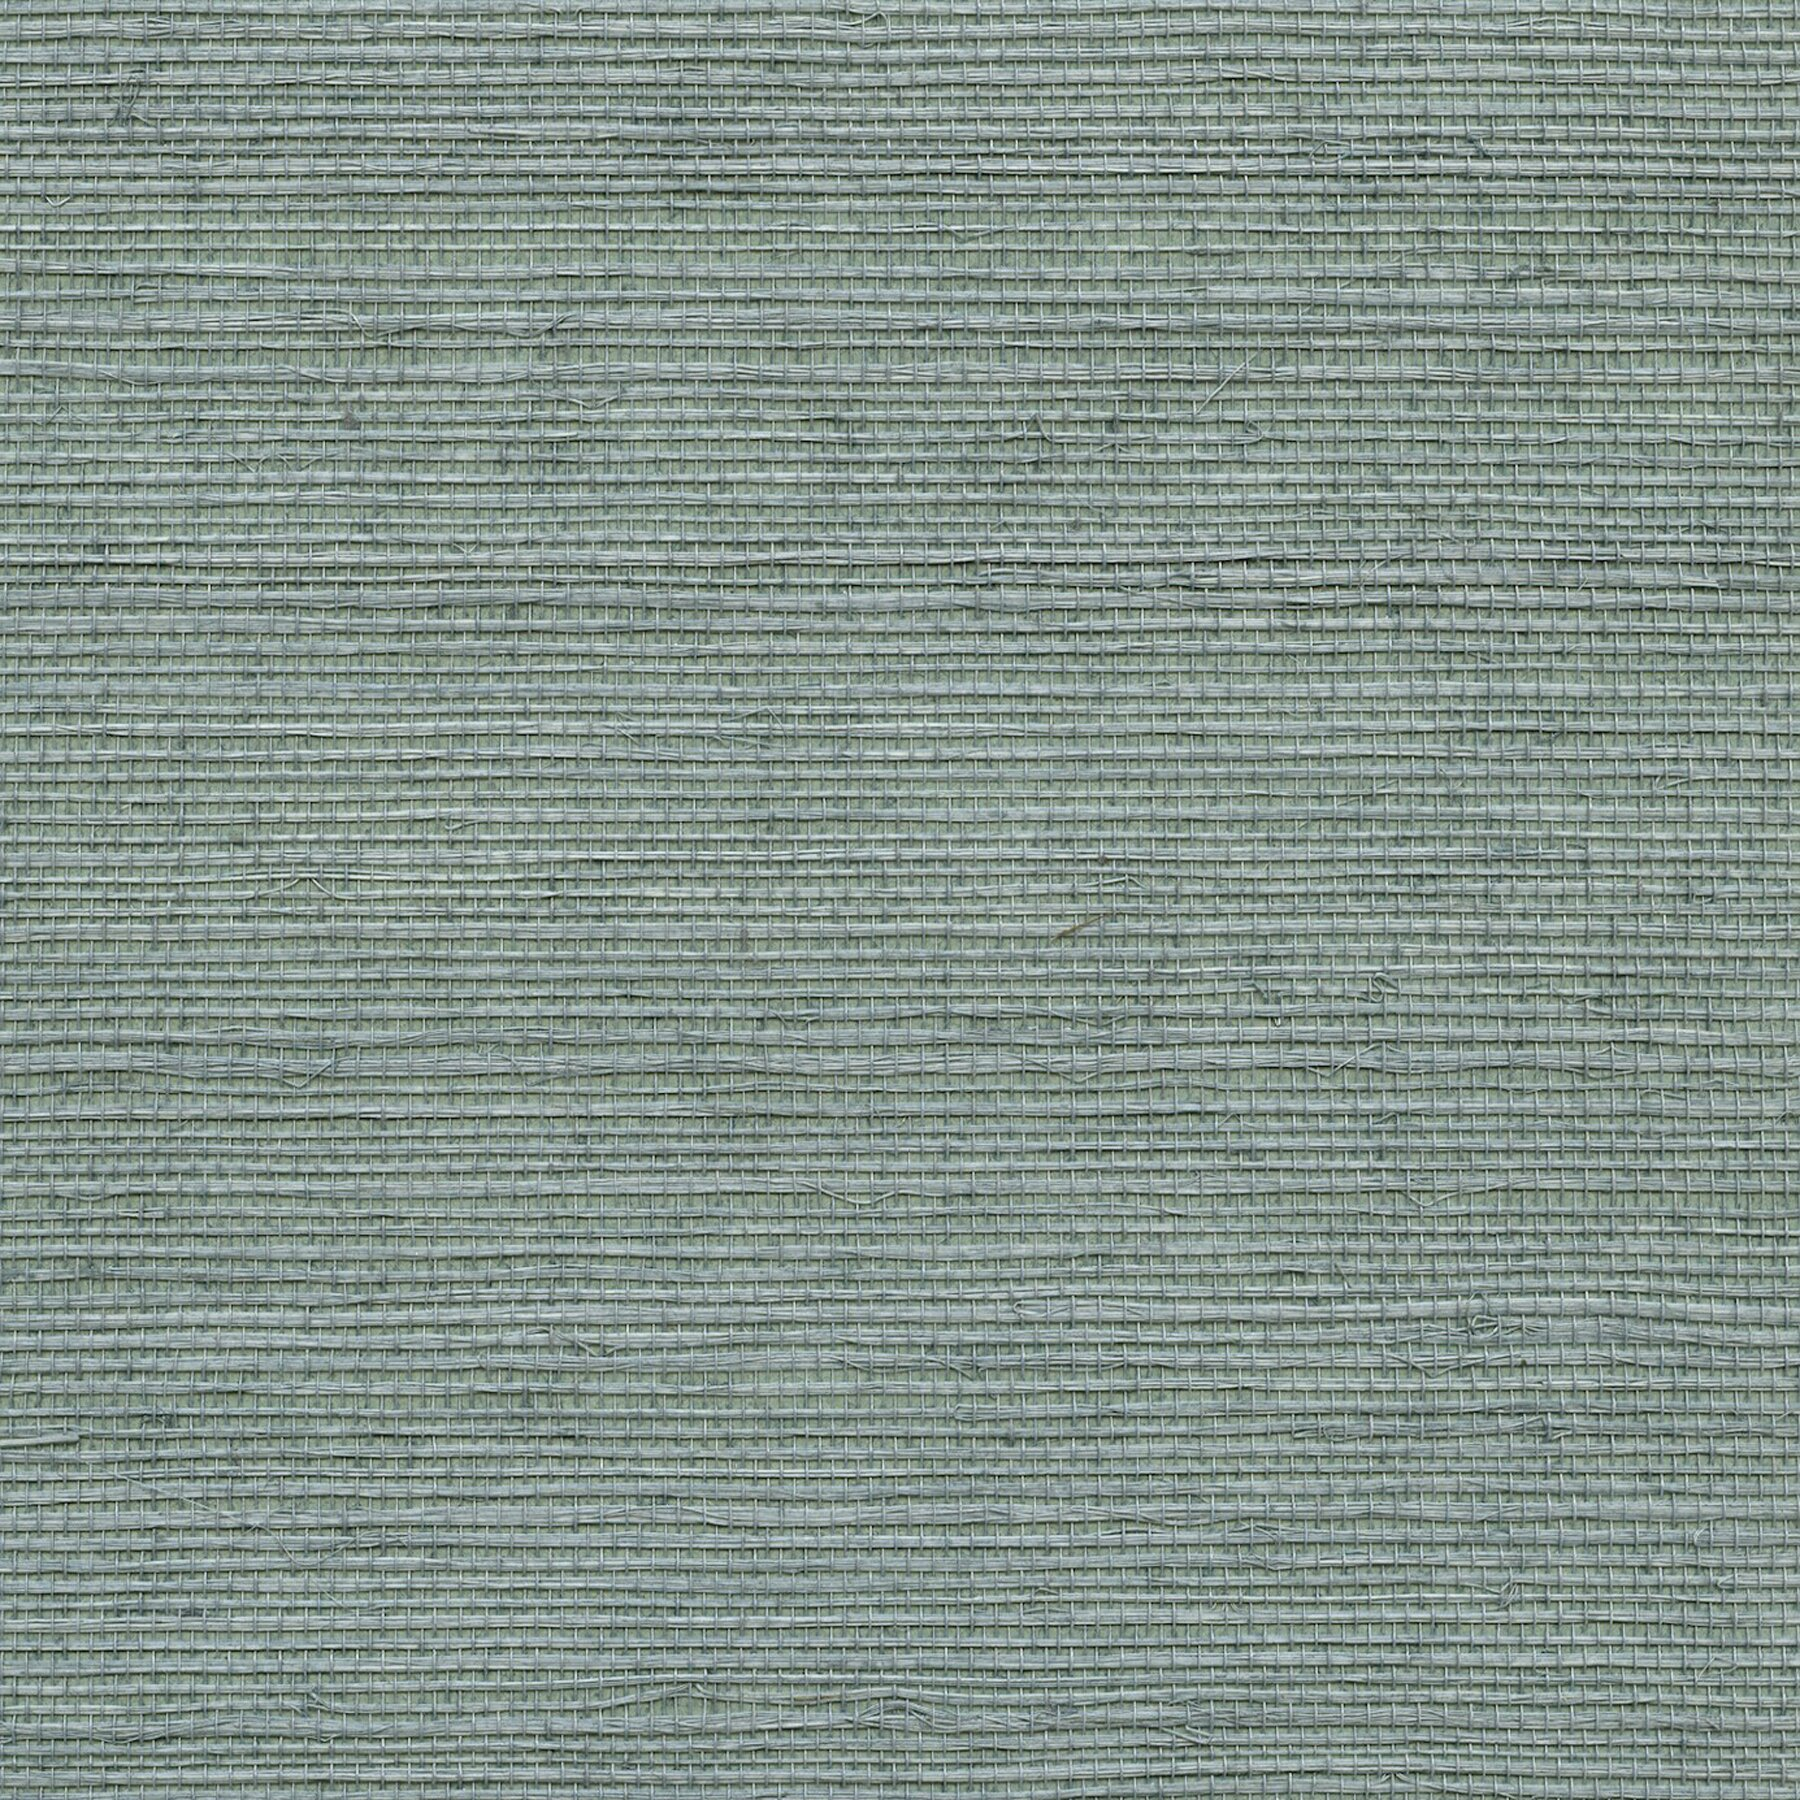 Silver Grasscloth Wallpaper: Brewster Home Fashions Sand Dollar Wisteria Grasscloth 24